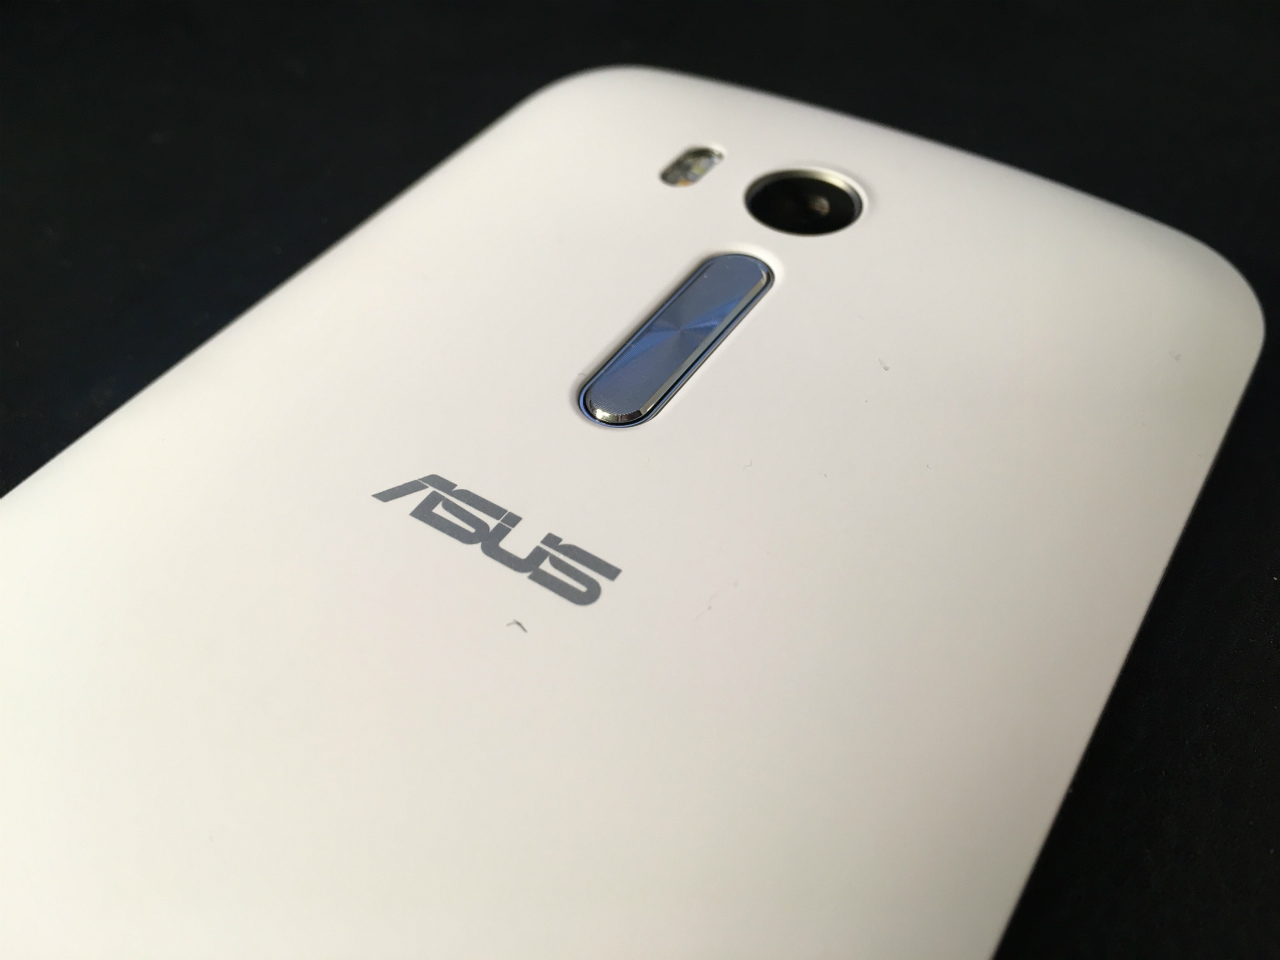 1231-201604_ASUS ZB551KL-WH16 05